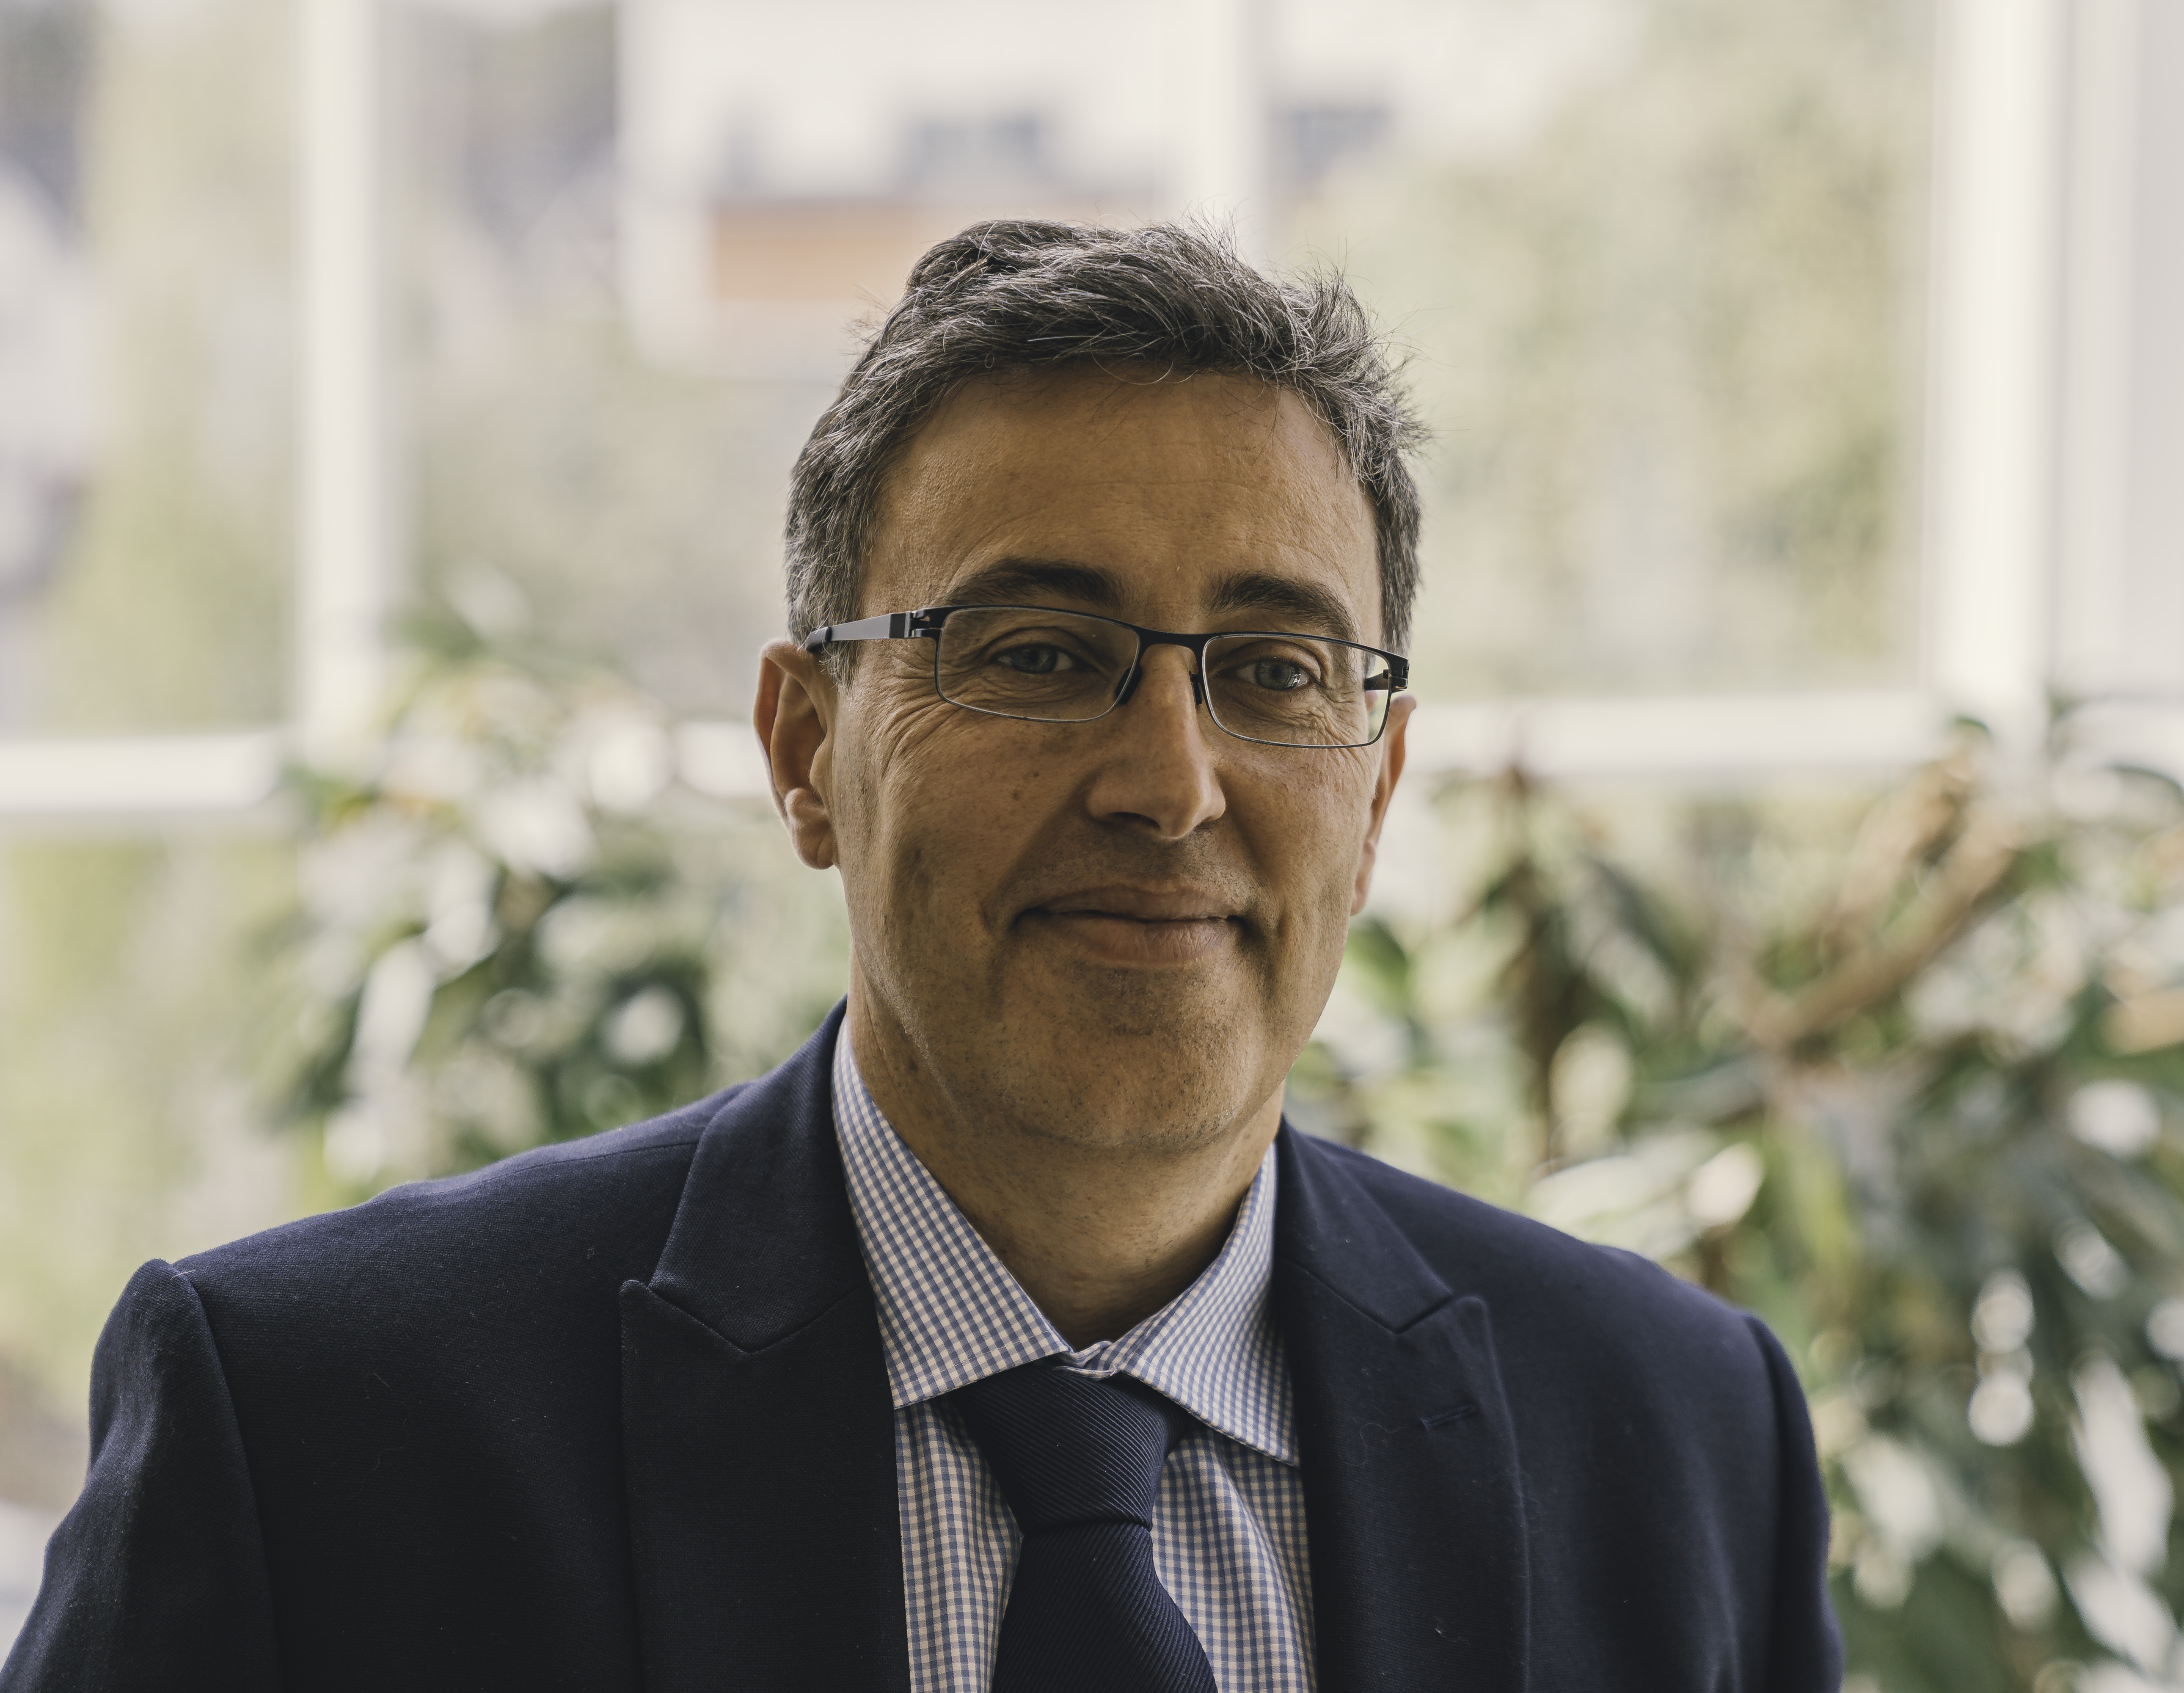 Protect Line Appoints Pedro Coimbra Fernandes as Chief Financial Officer